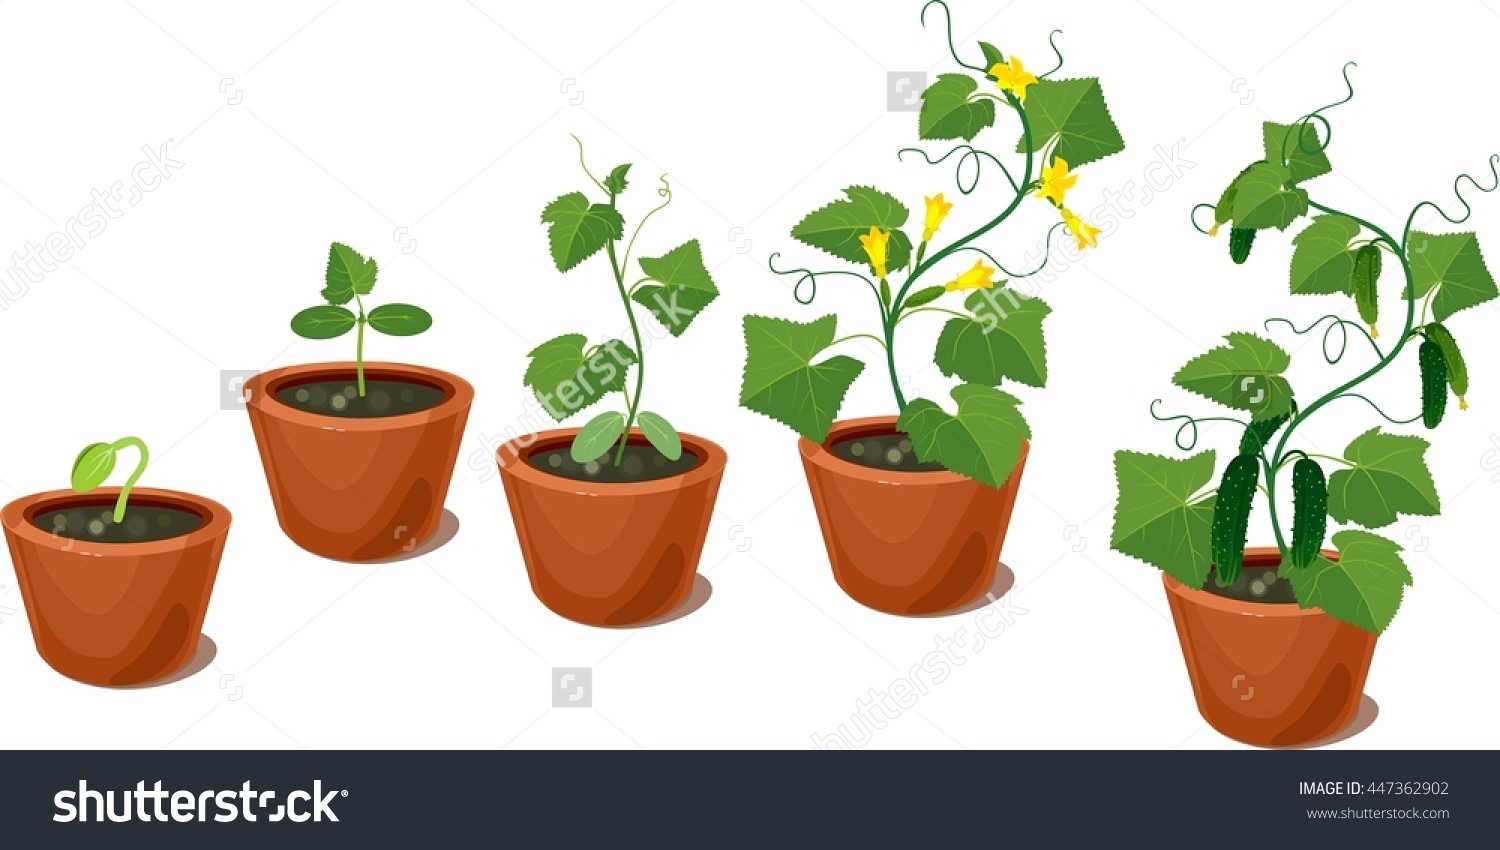 Cucumber Plant Growth Cycle Stock Vector 447362902.